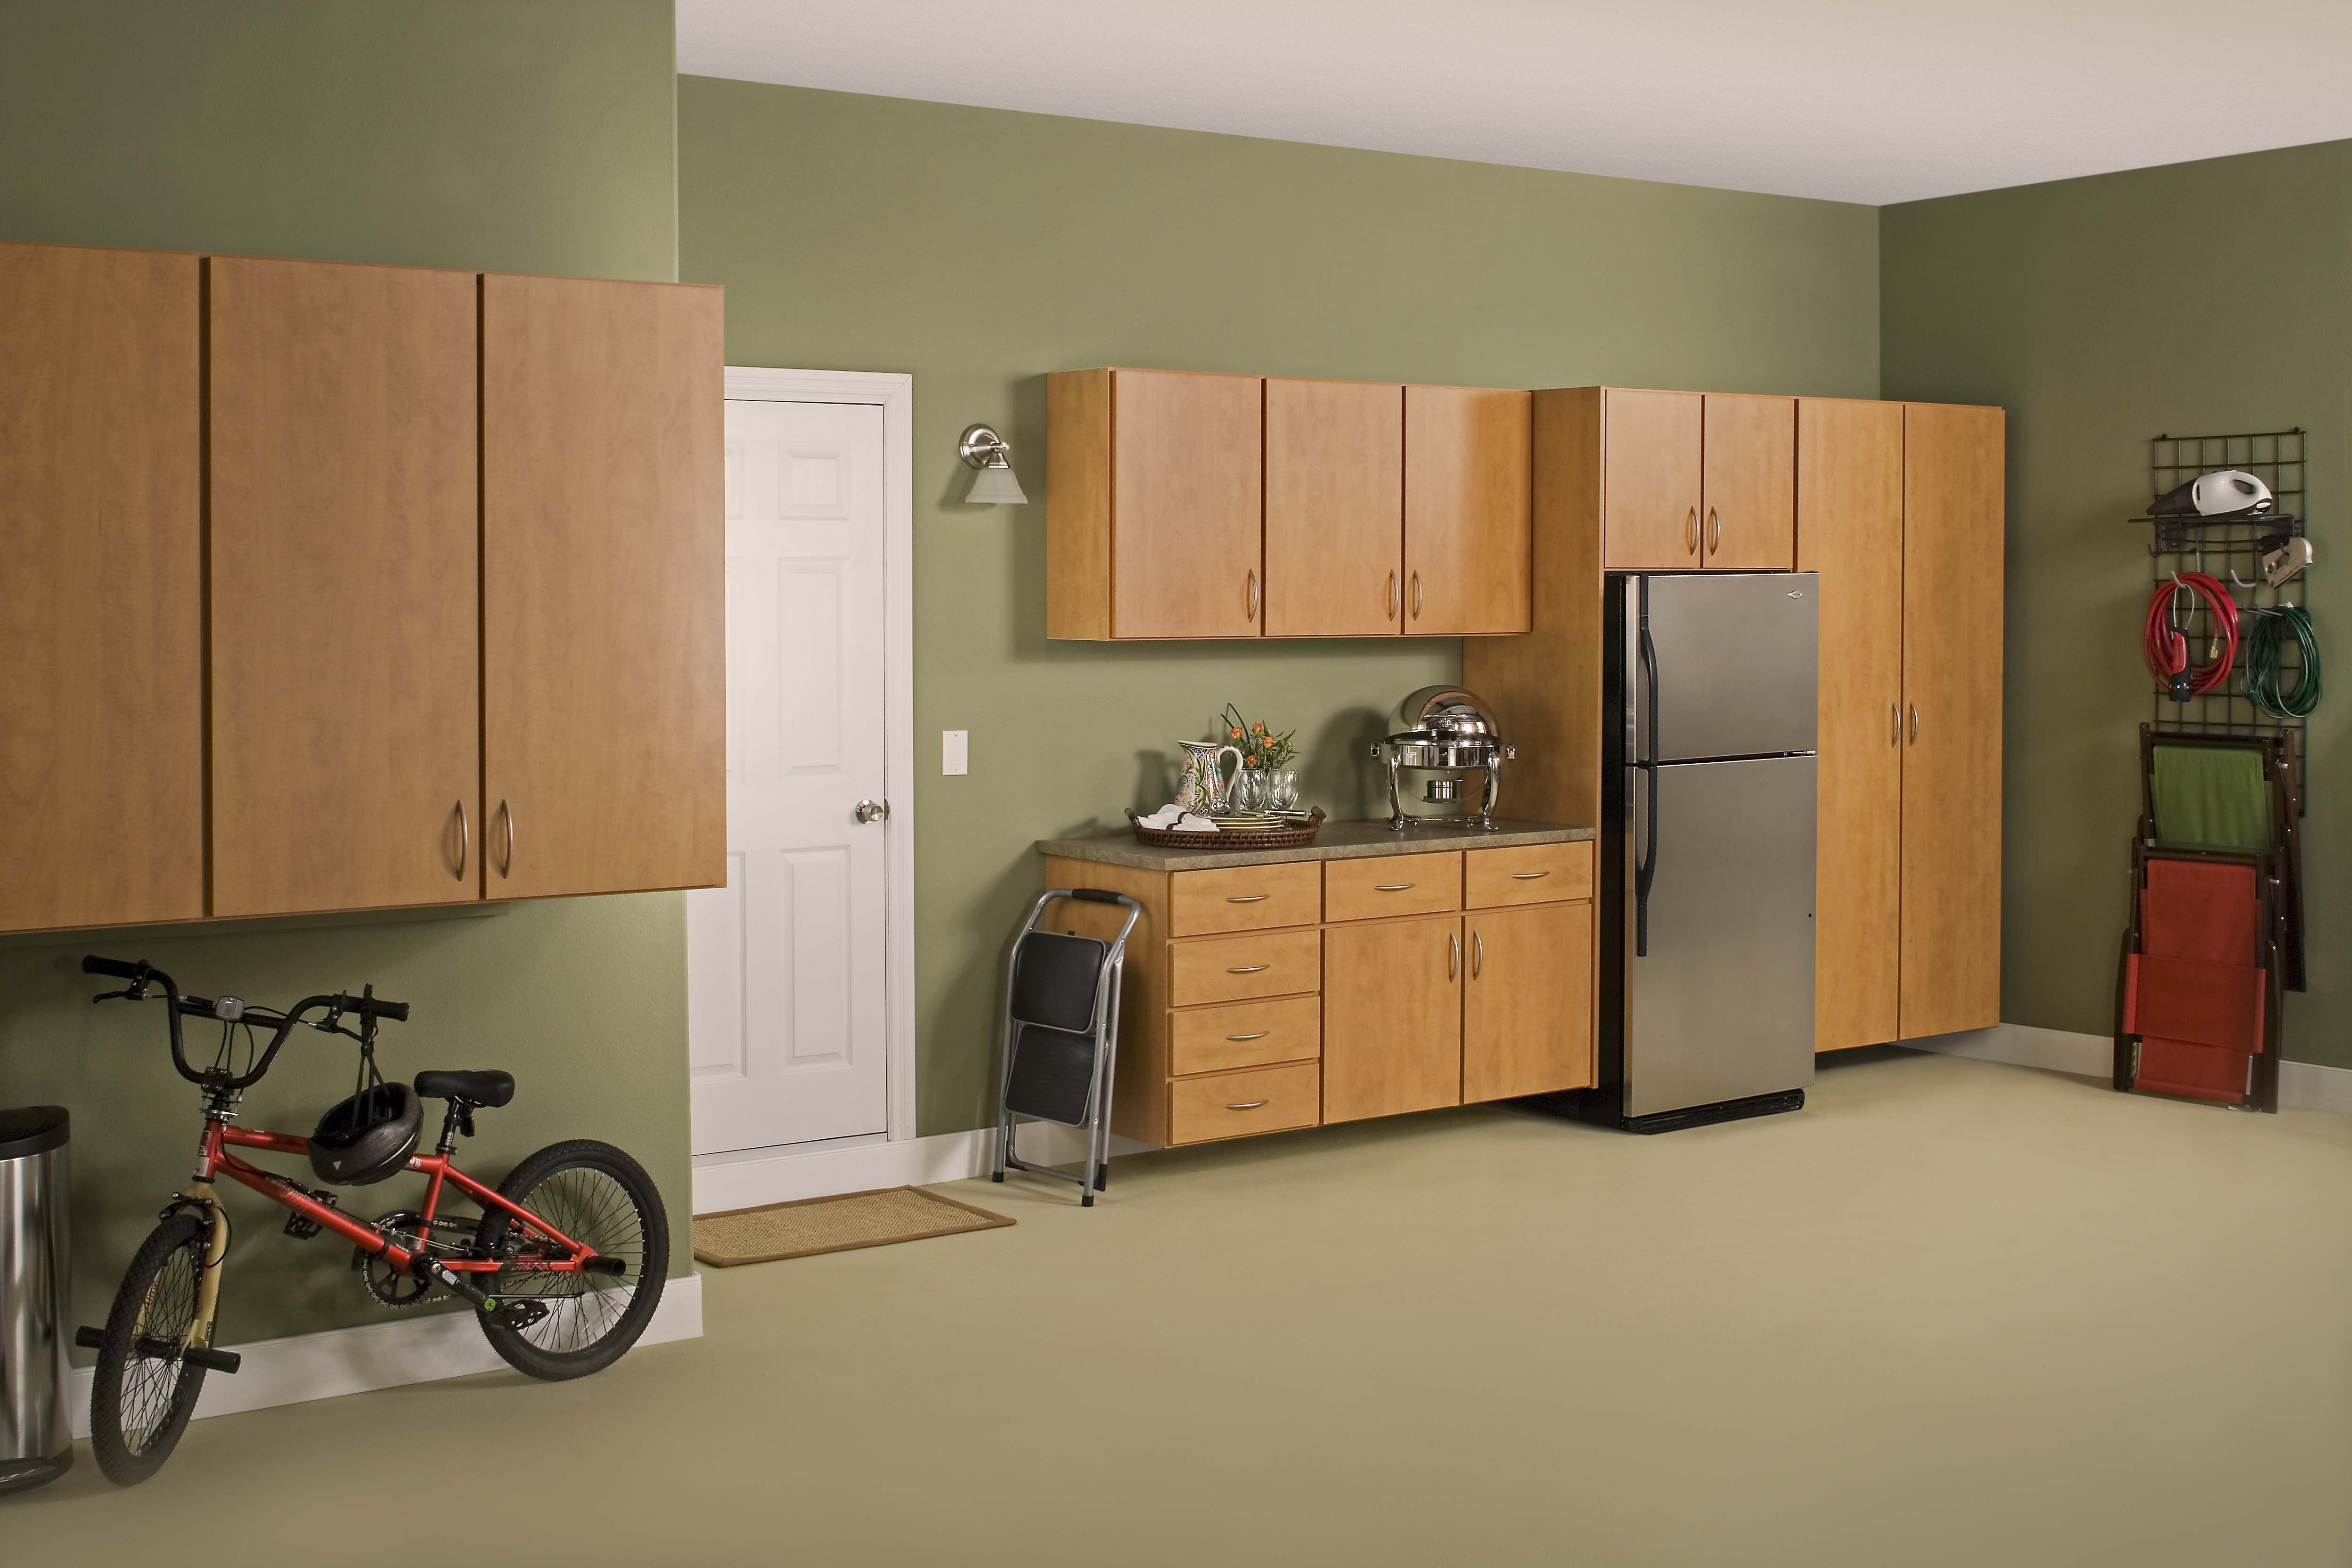 steel with pegs industrial o doors cabinets hanger storage garage t cabinet